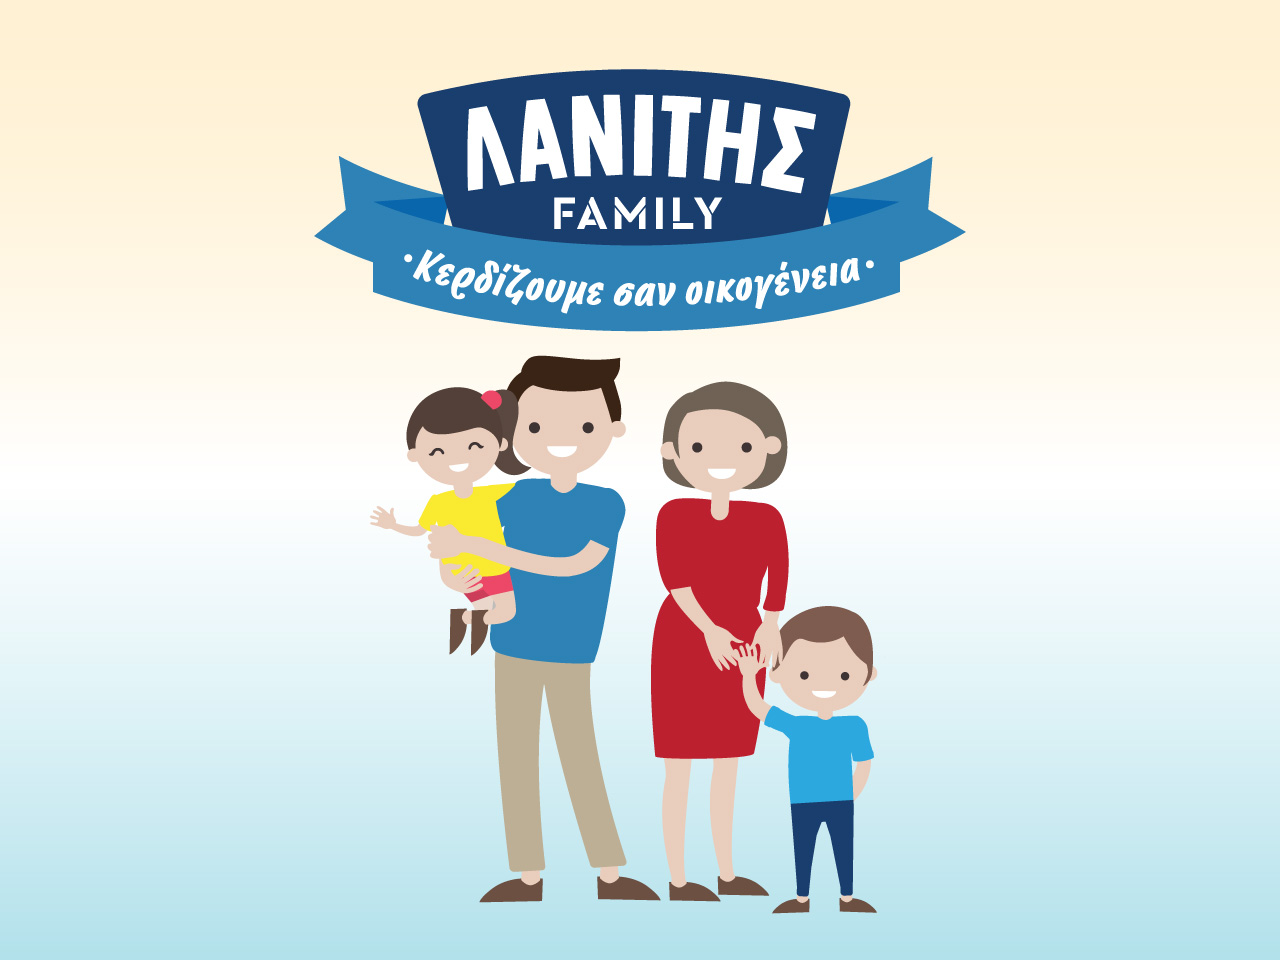 Lanitis Family app project image